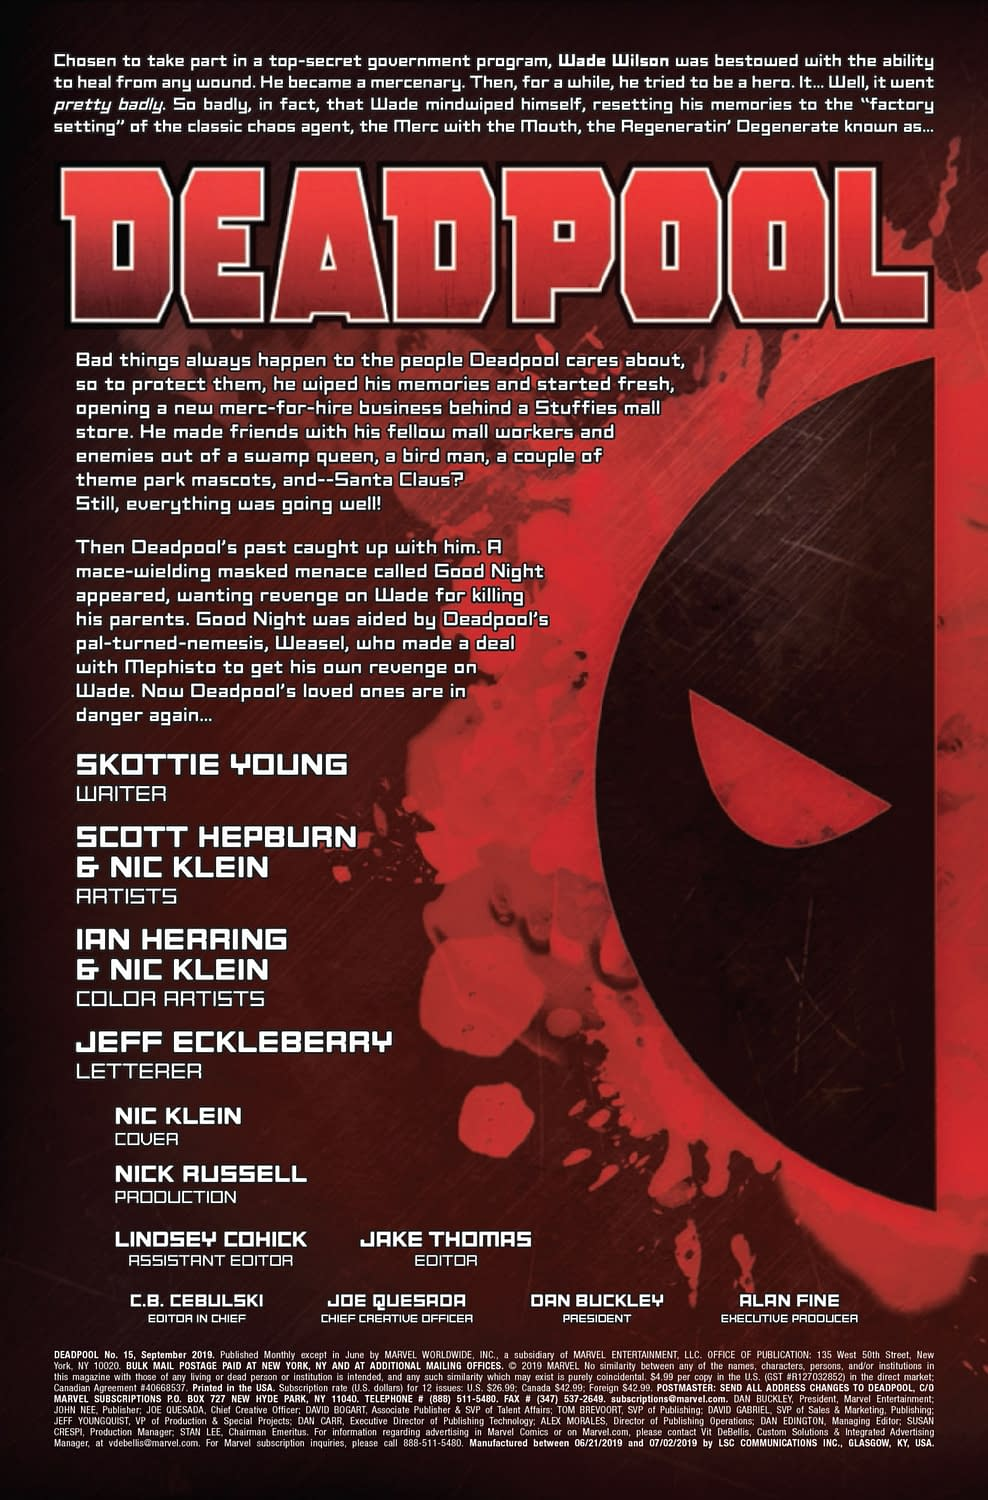 Deadpool #15: Who Will Kill Wade Wilson? [Preview]